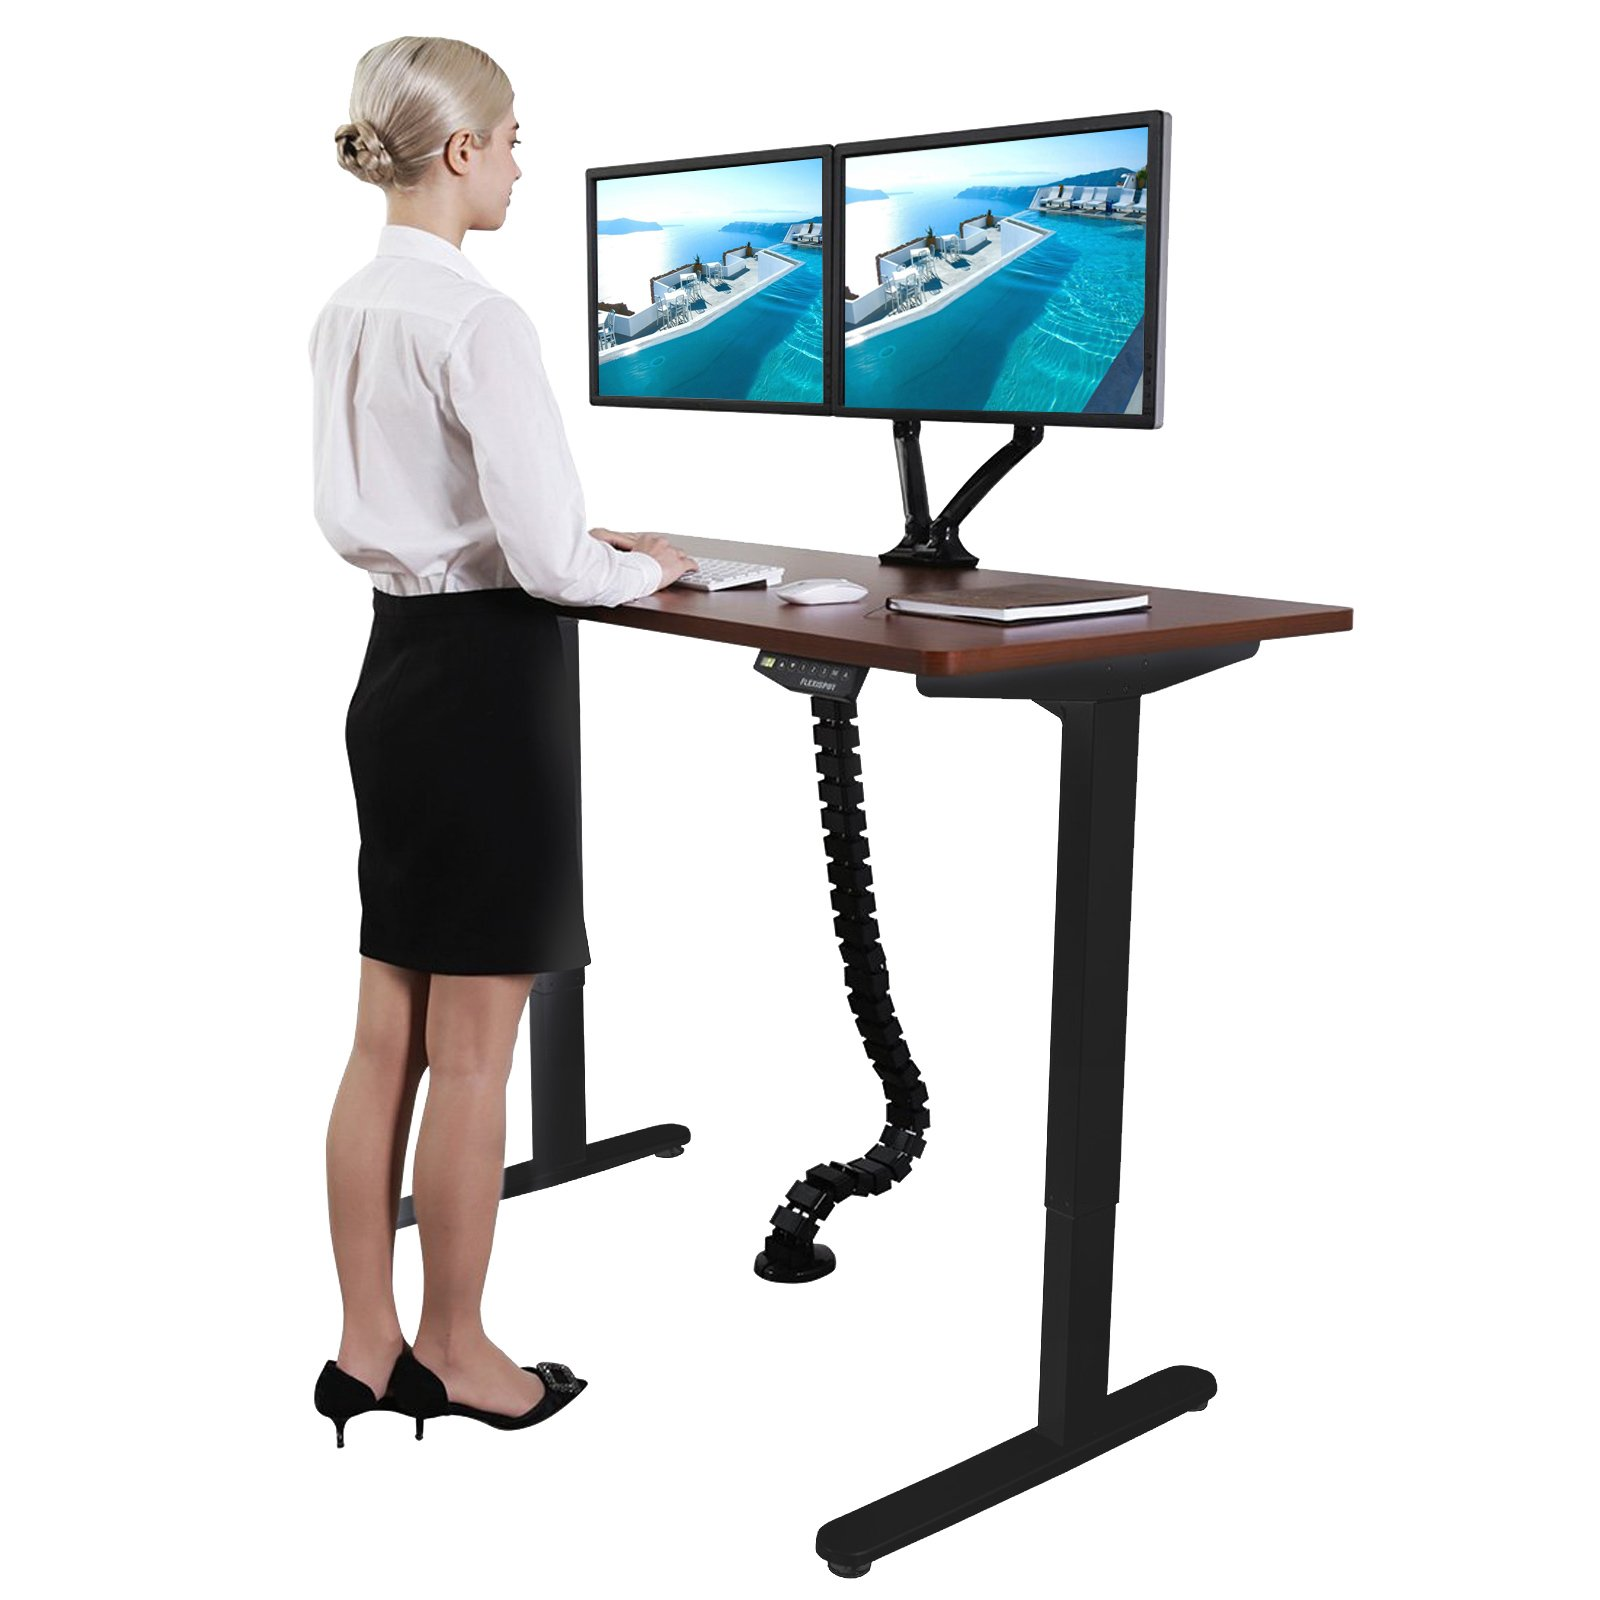 Superland Black Electric Stand Up Desk Frame DIY Workstation 27'' - 48'' Single Motor Ergonomic Standing Height Adjustable Base